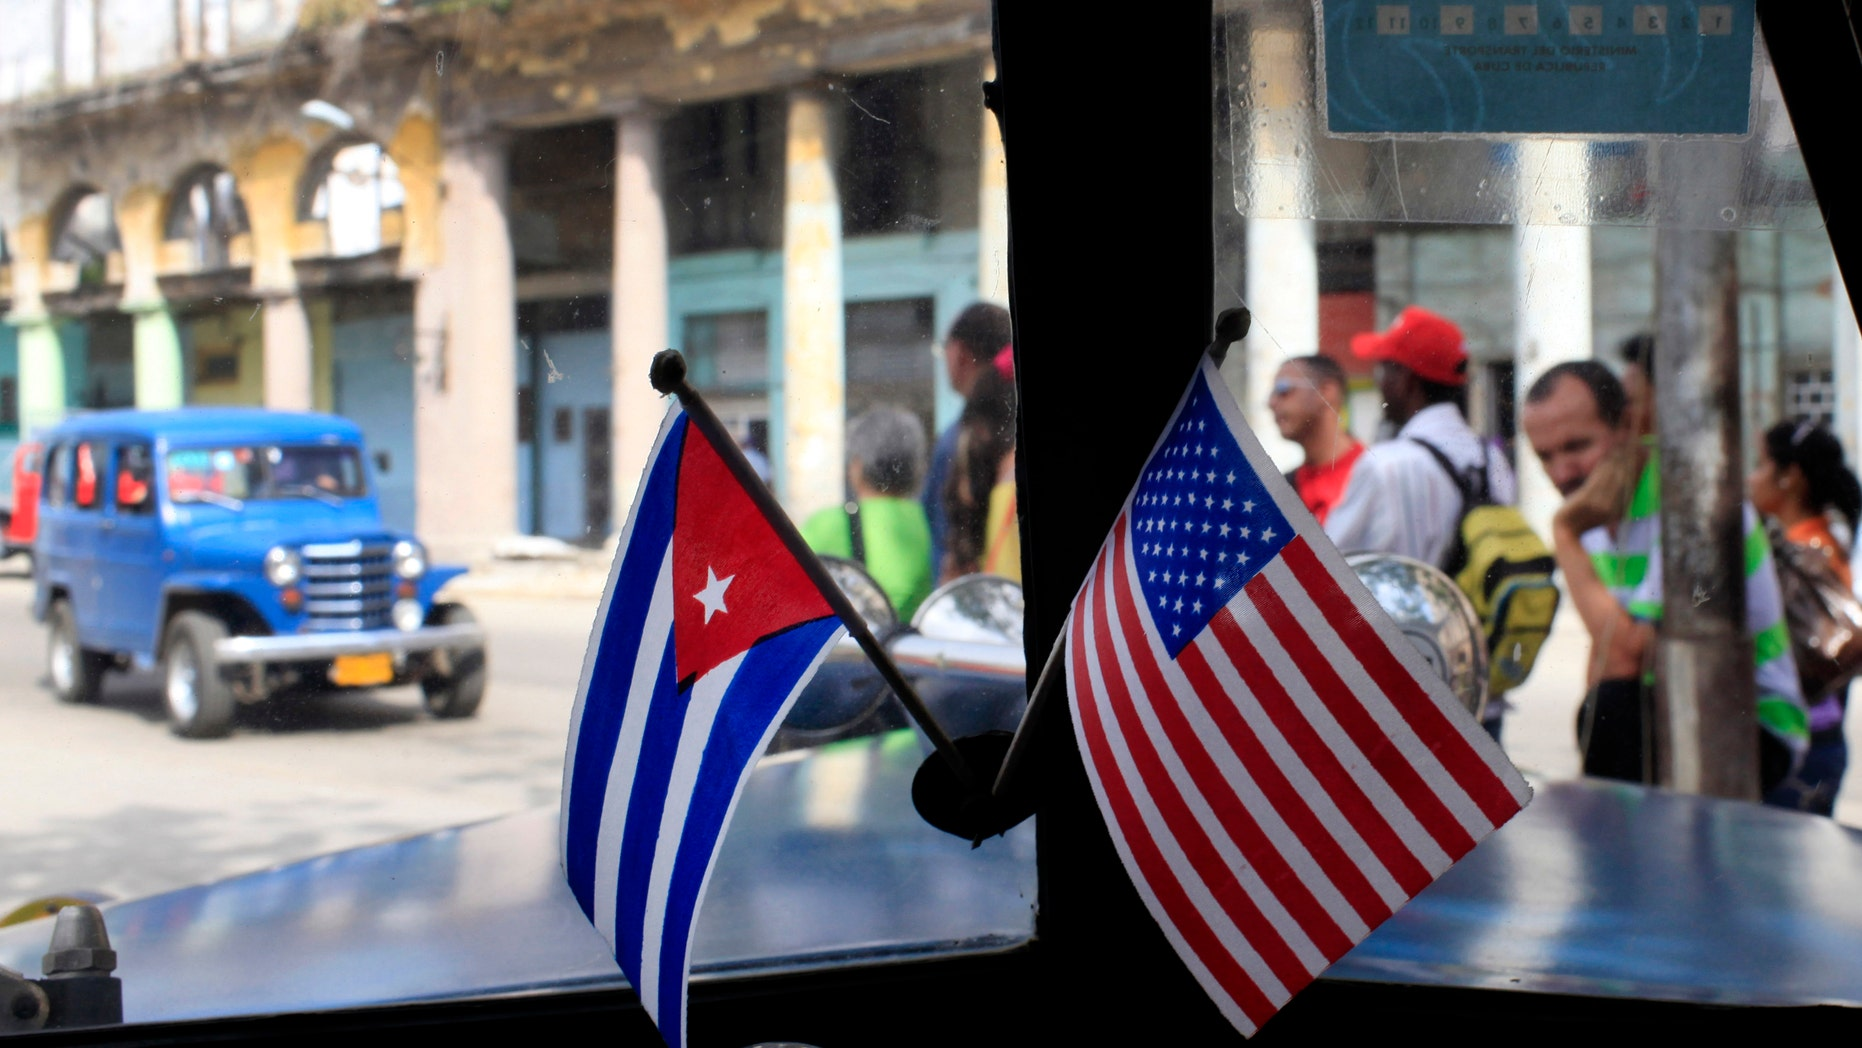 FILE - In this March 22, 2013 file photo, miniature flags representing Cuba and the U.S. are displayed on the dash of an American classic car in Havana, Cuba.  The Obama administration is putting a large dent in the U.S. embargo against Cuba as of Friday, significantly loosening restrictions on American trade and investment. The new rules also open up the communist island to greater American travel and allow U.S. citizens to start bringing home small amounts of Cuban cigars after more than a half-century ban. (AP Photo/Franklin Reyes, File)